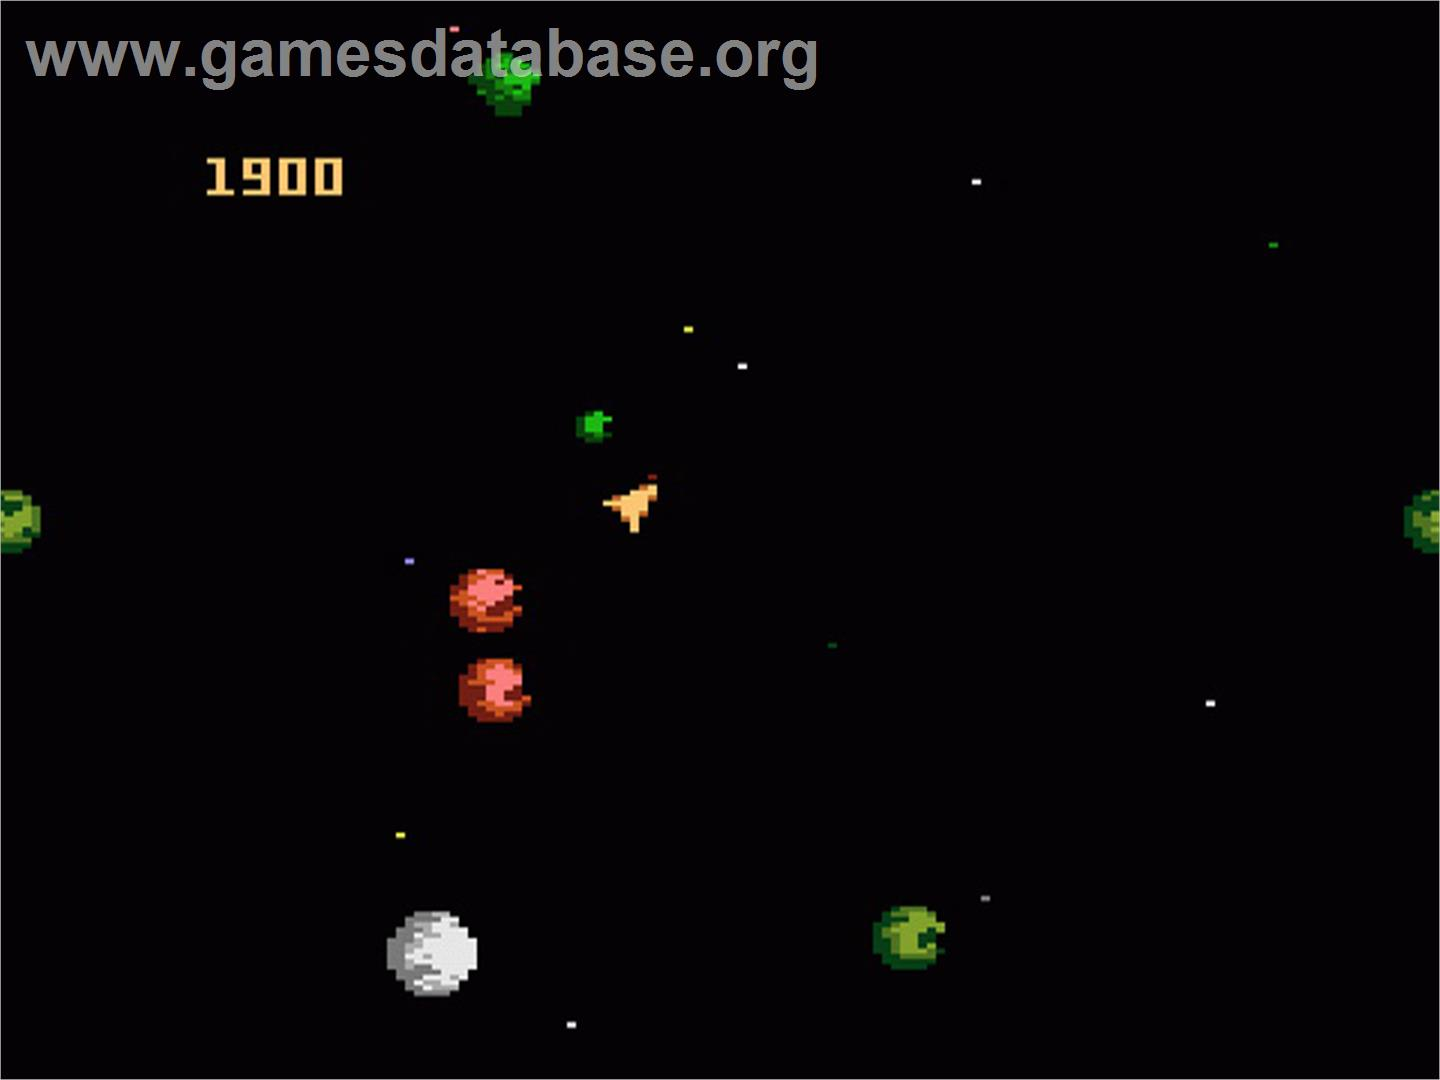 Asteroids Game - Play Free Online Games